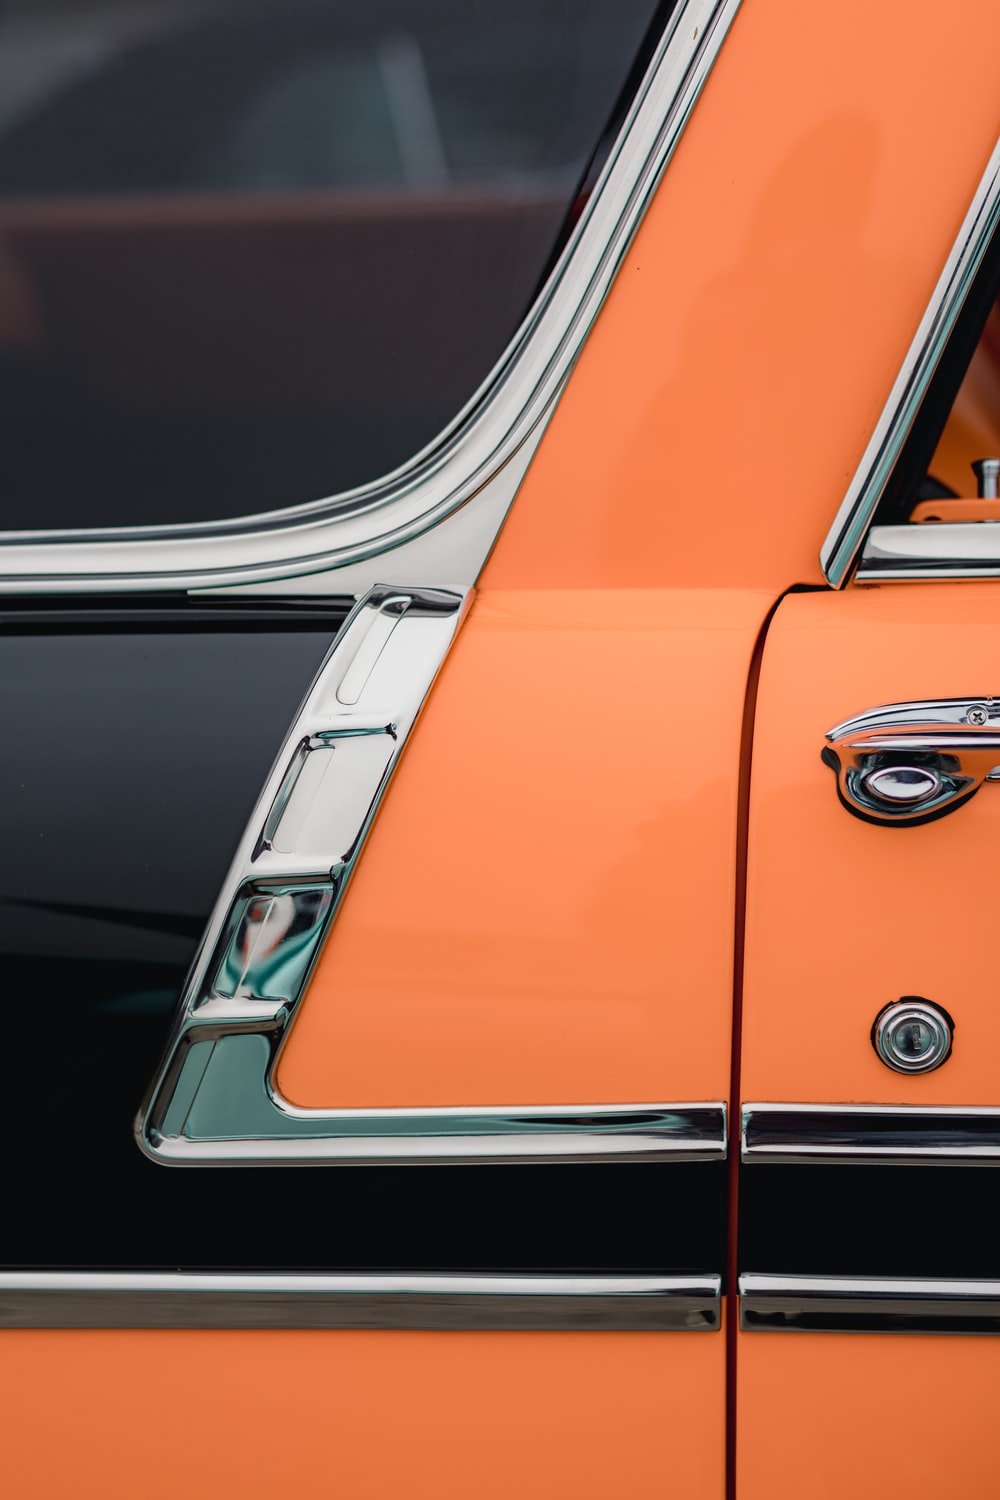 orange and silver car in a parking lot